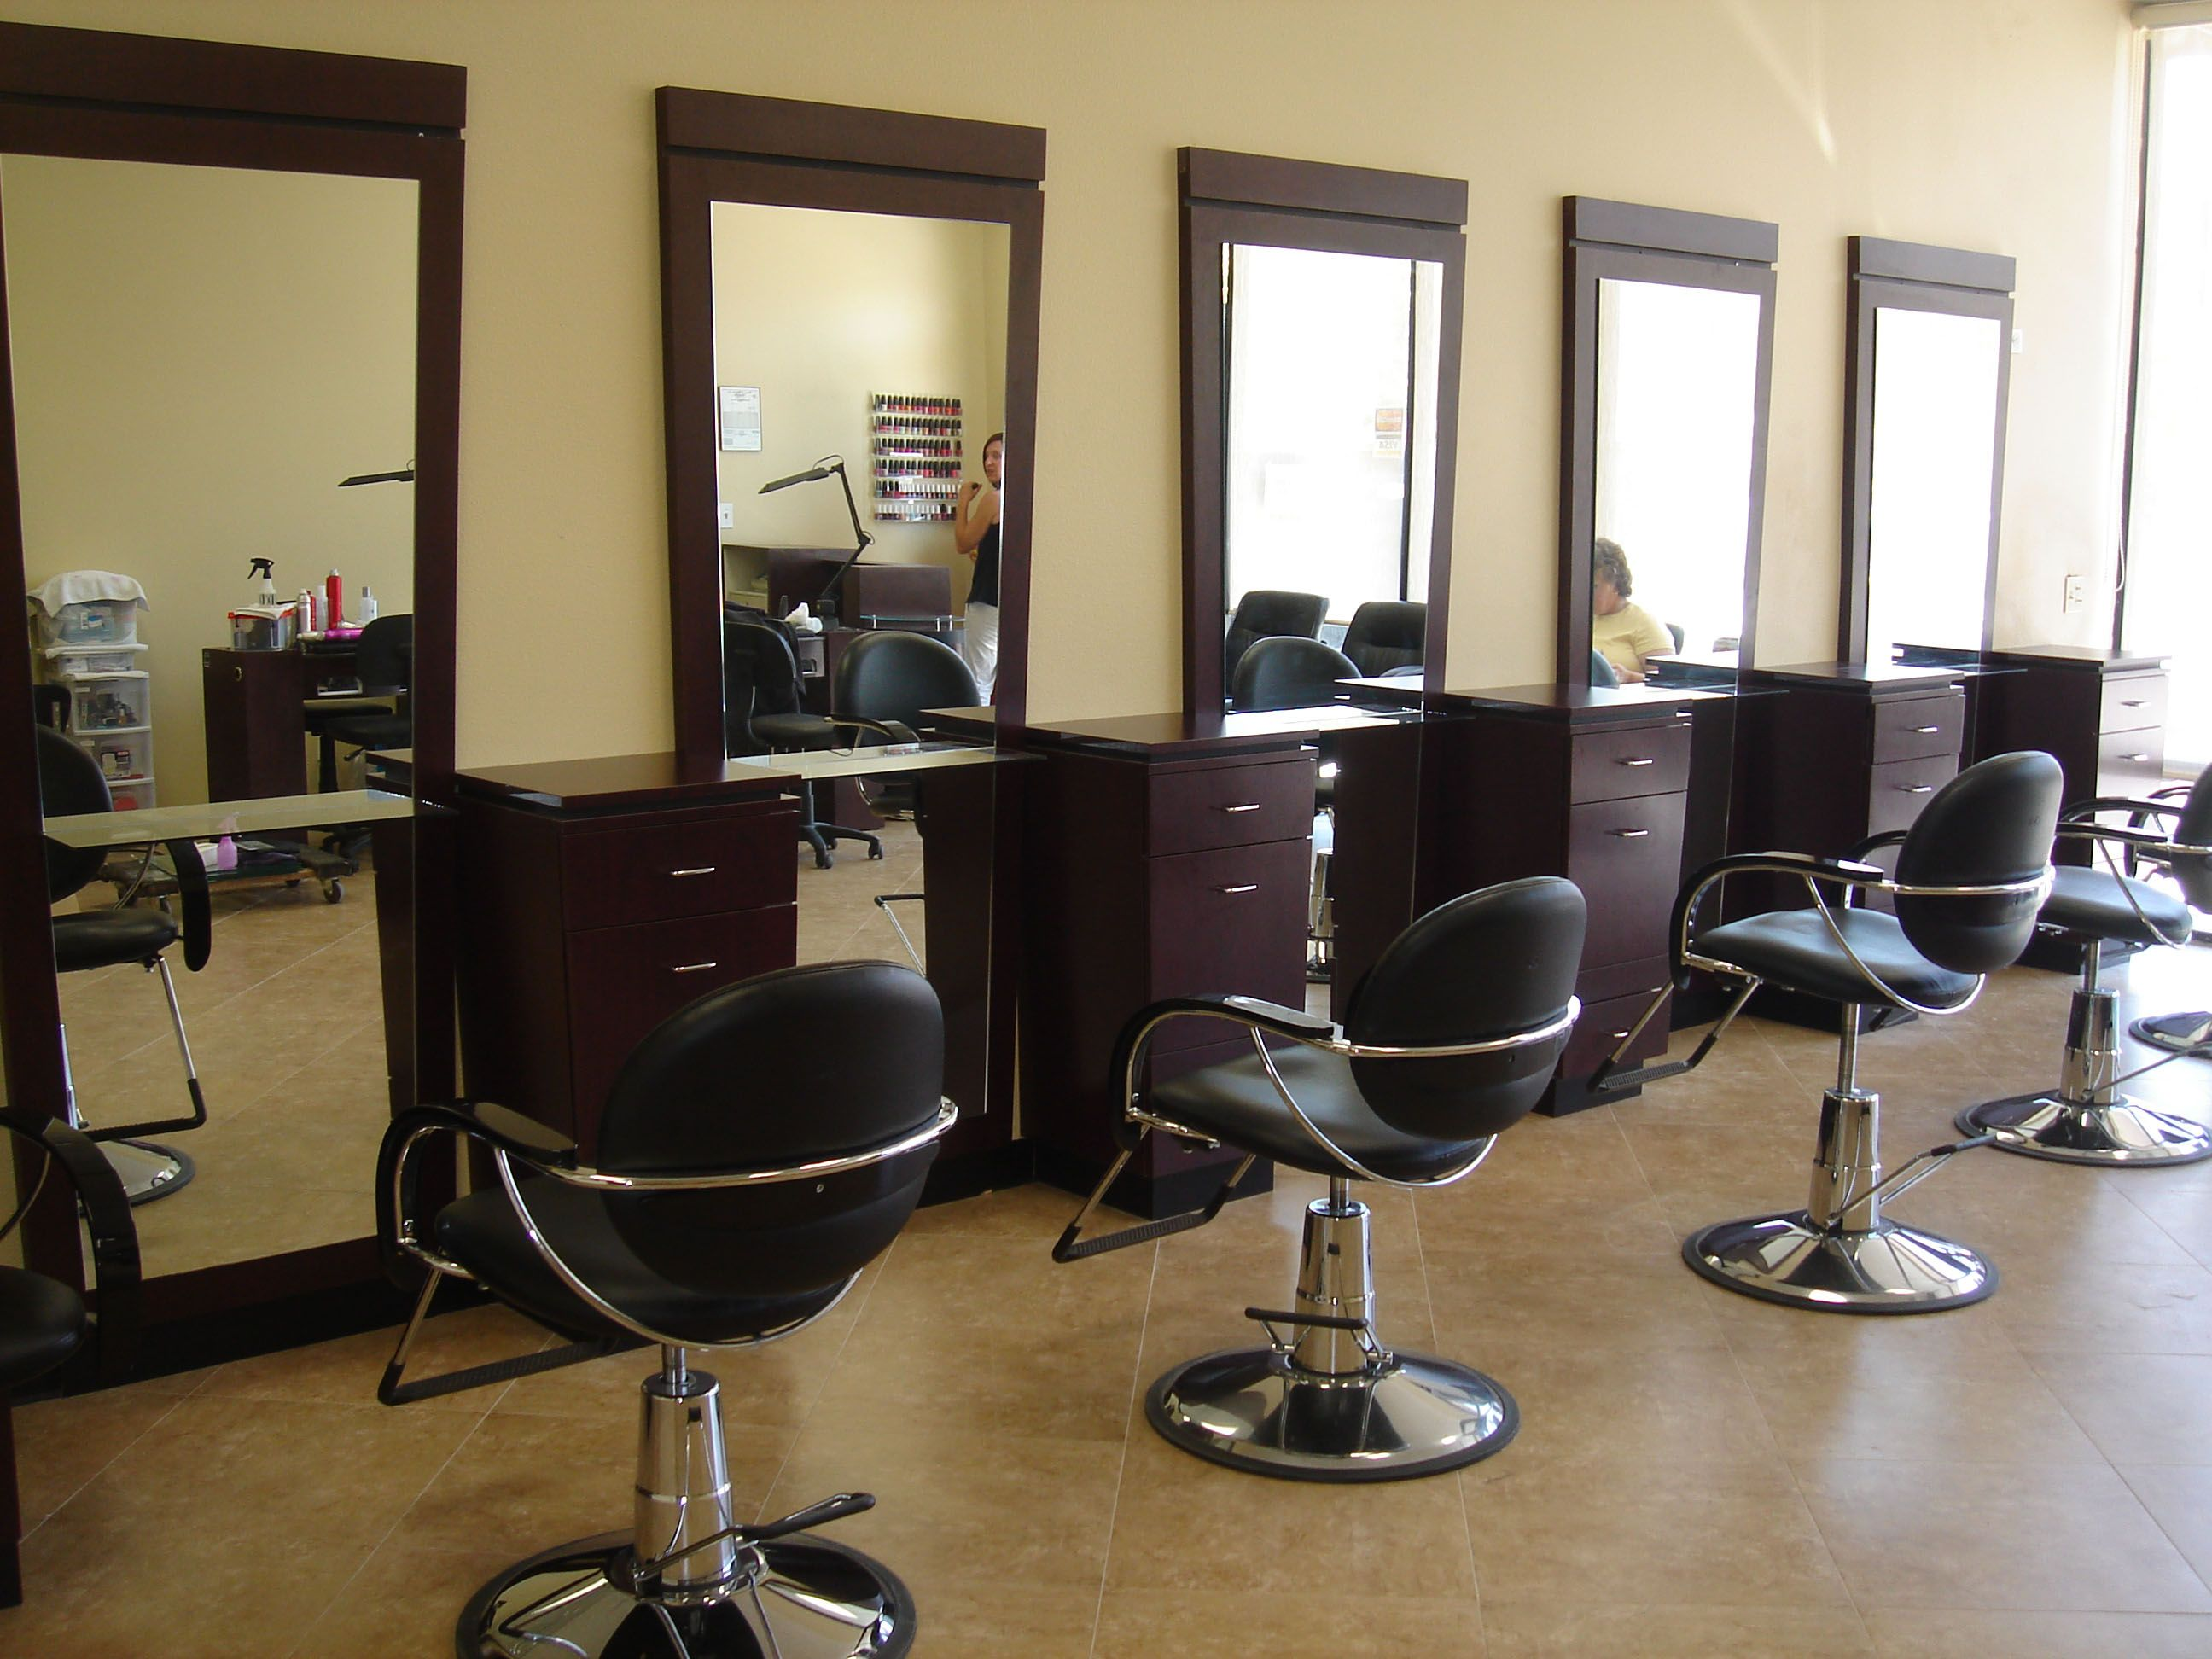 Marvelous Hair Salon Furniture Cheap #1: 1000+ Images About Salon Furniture Ideas On Pinterest   Waiting Area, Home Hair Salons And Salon Equipment